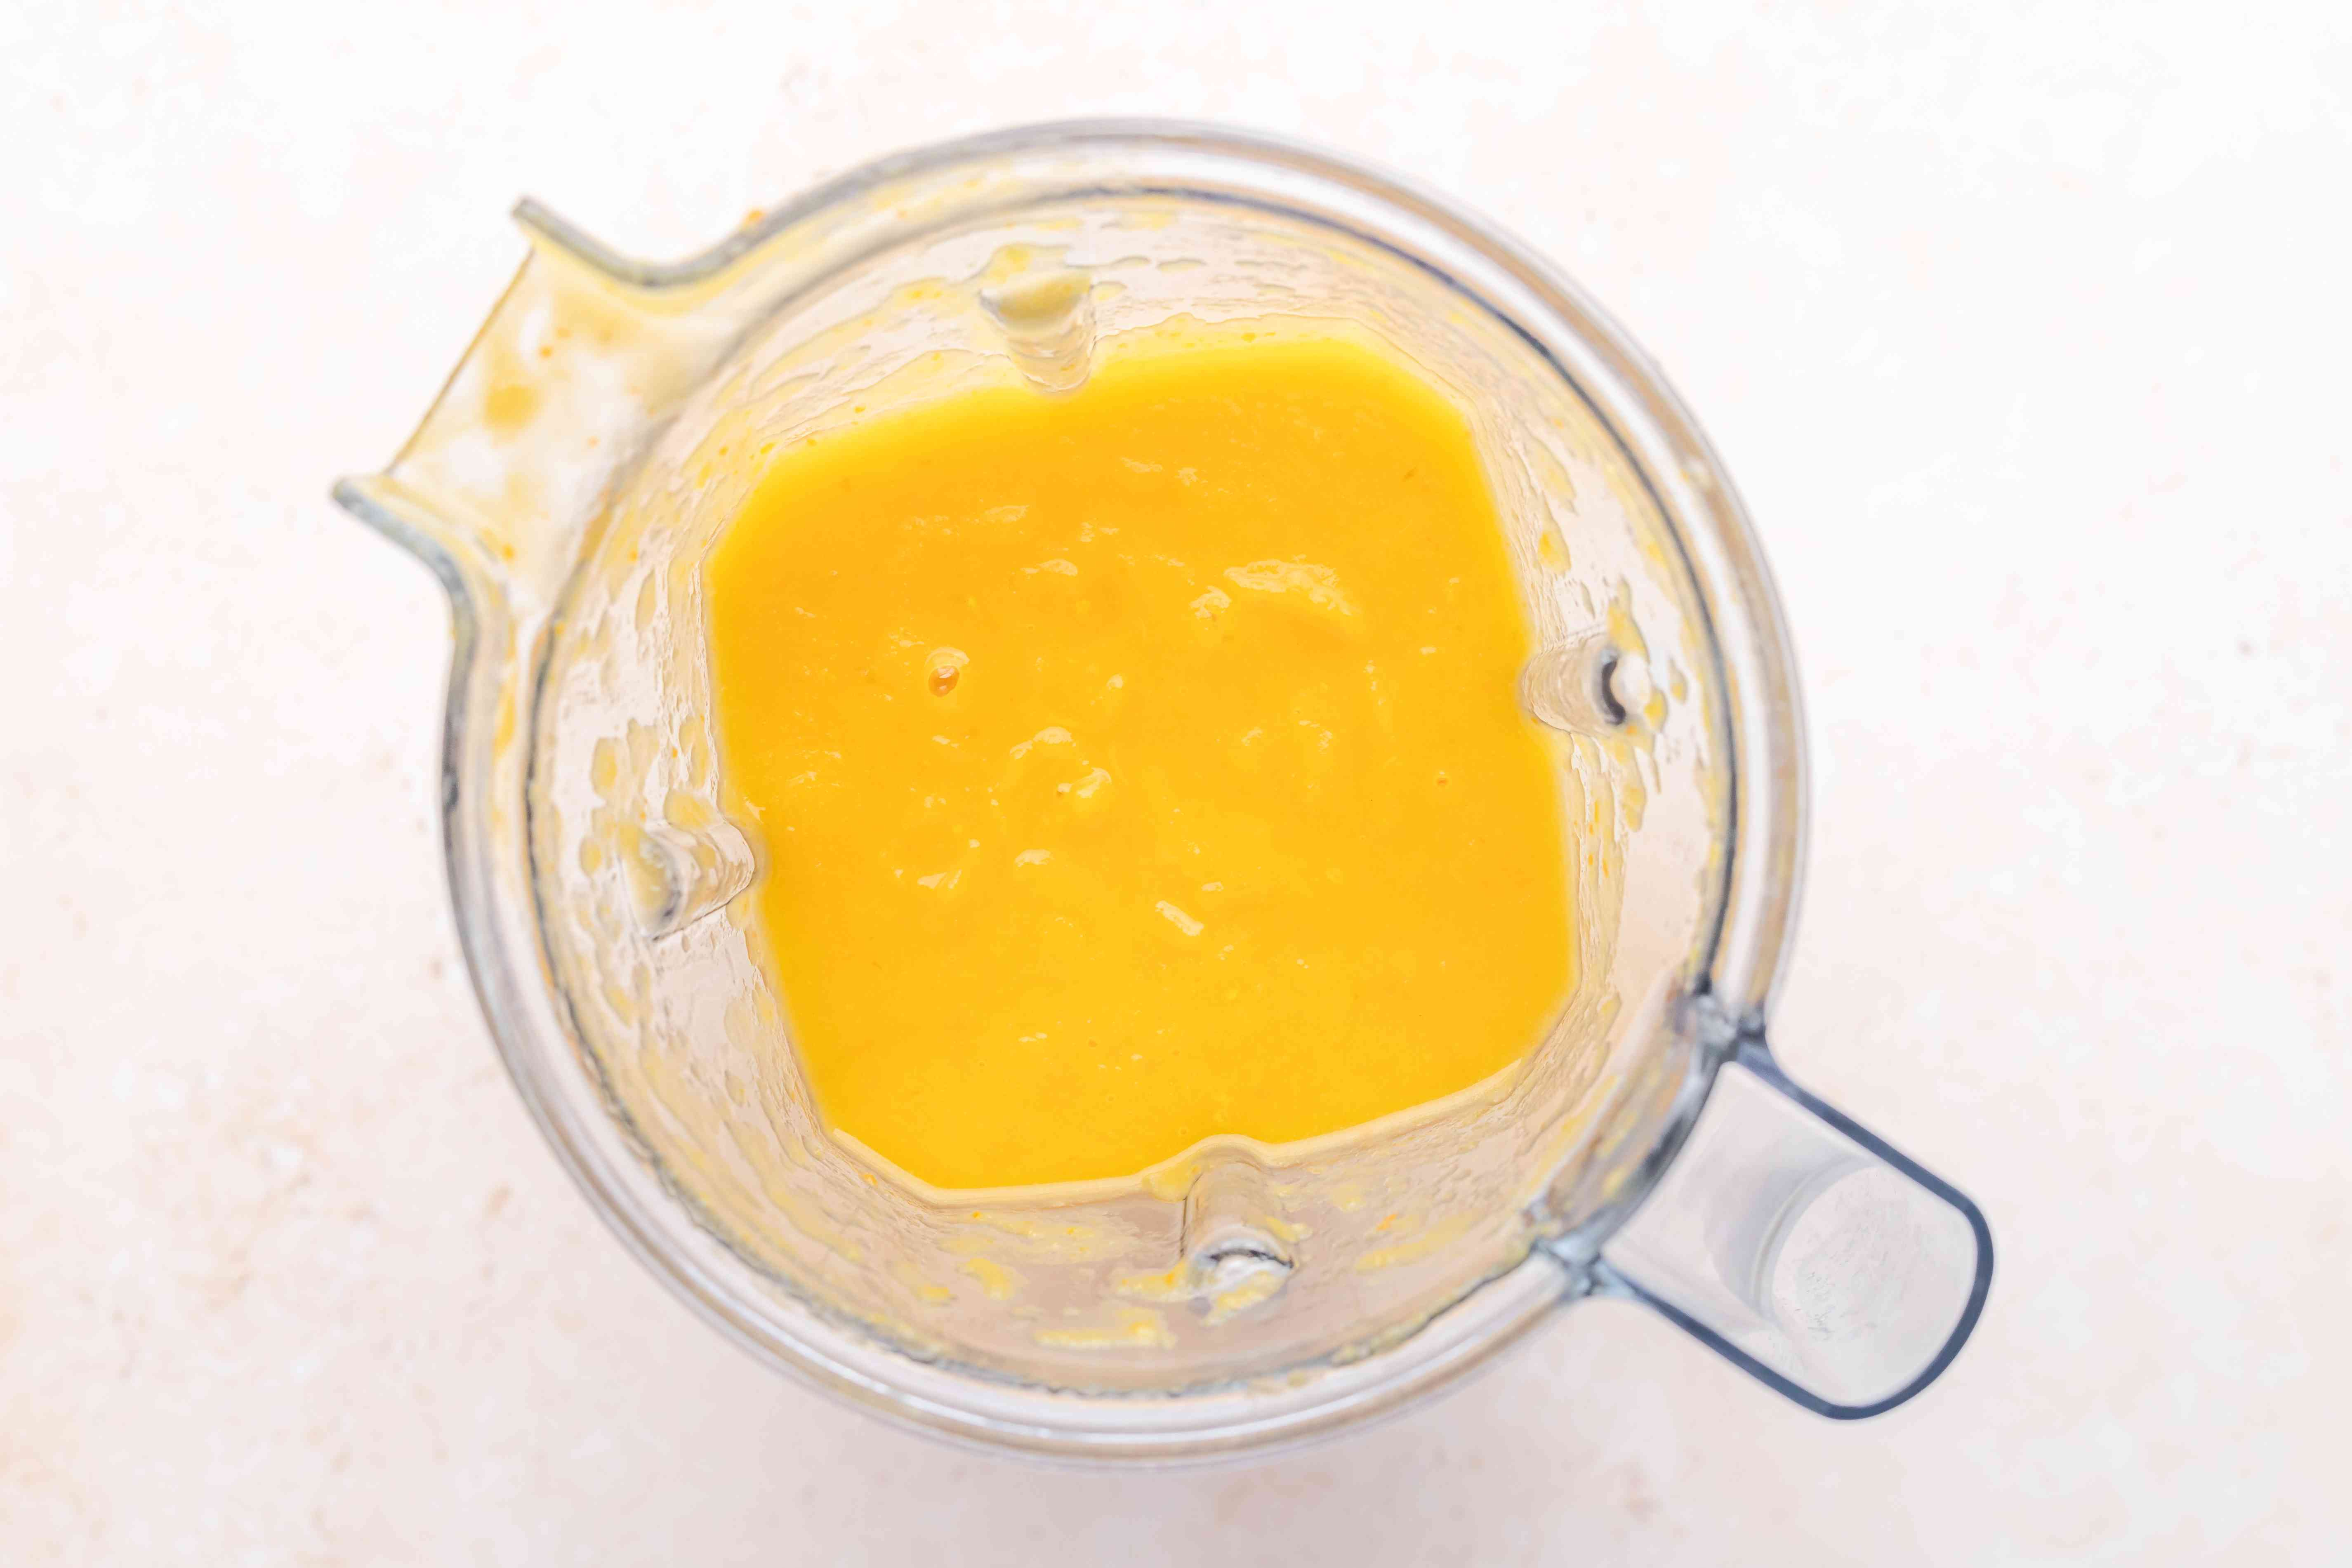 Pureed butternut squash soup in a blender.